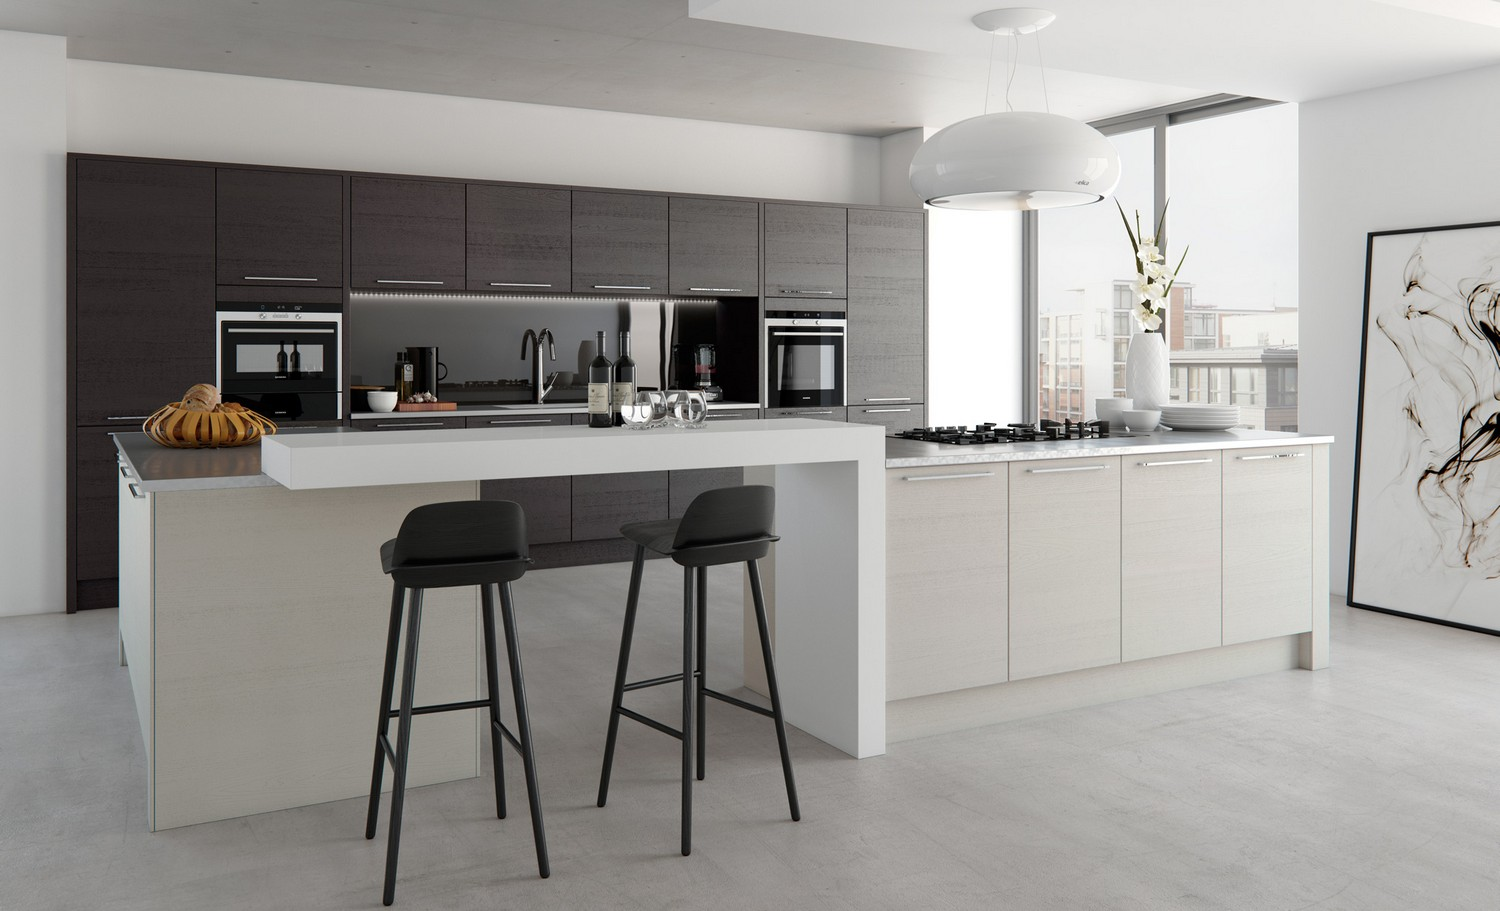 kitchen design grey colour. Stained timber slab kitchen design featuring a dark black and light grey  stain applying Modern Kitchens Liverpool Cleveland kitchens